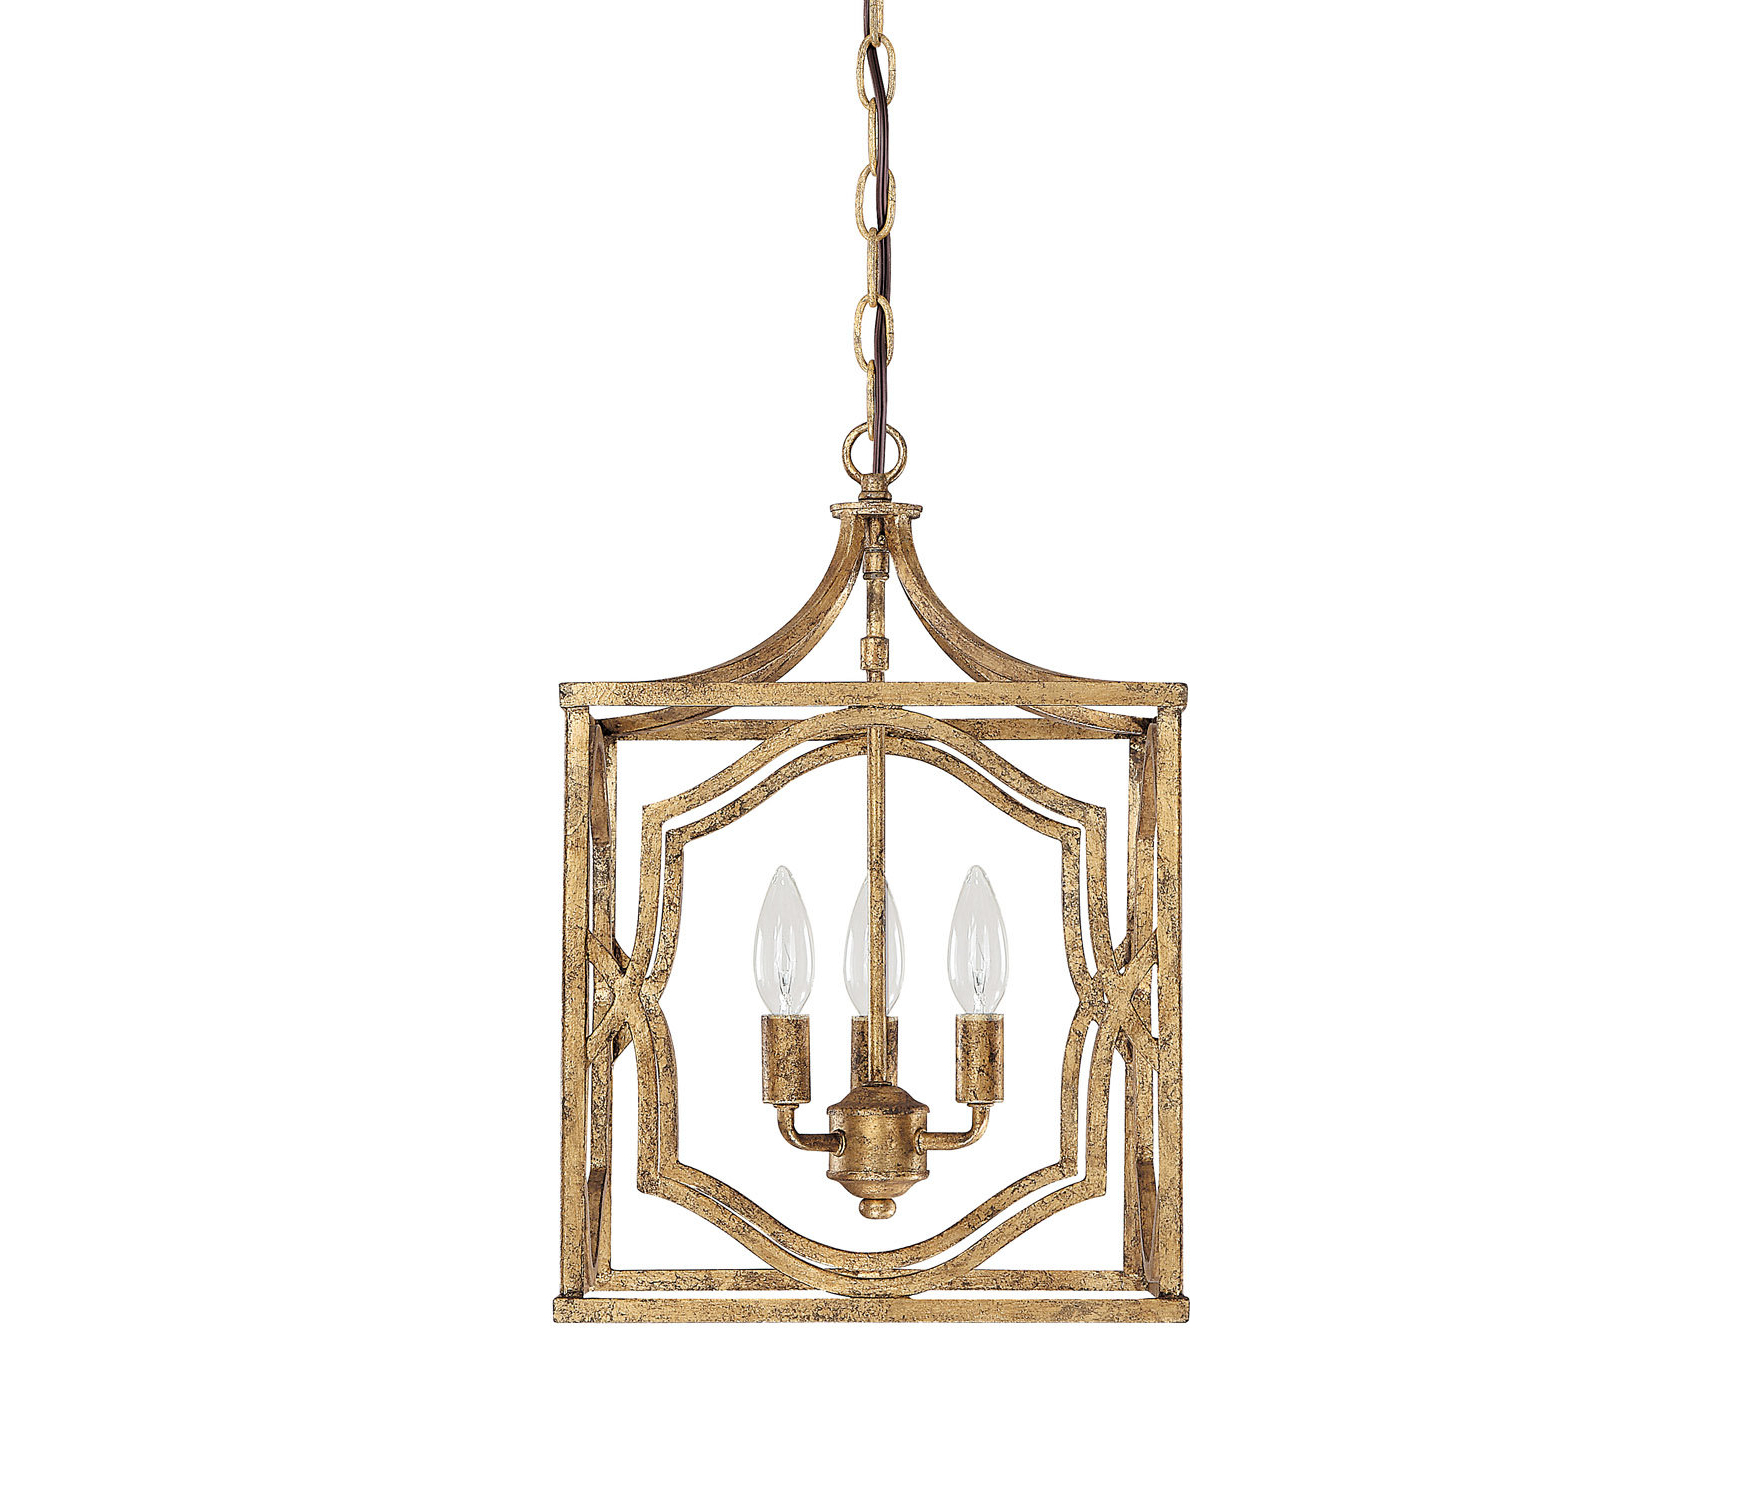 Armande 3 Light Lantern Geometric Pendants With 2019 Myrtle 3 Light Lantern Square/rectangle Pendant & Reviews (View 6 of 20)